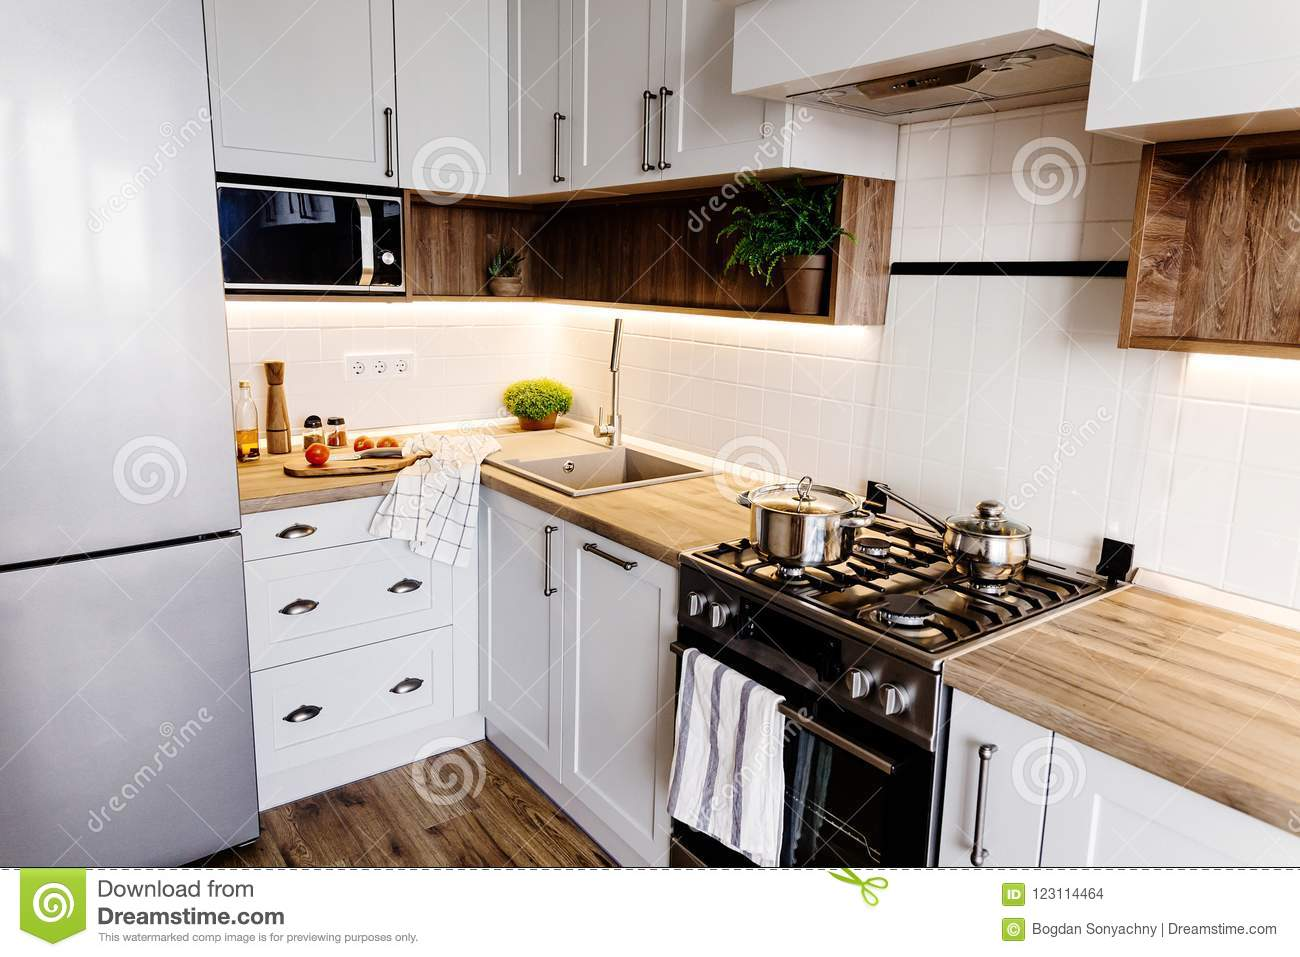 Stylish Kitchen Interior With Modern Cabinets And Stainless Steel Appliances In A Luxury New House Kitchen Design In Scandinavia Stock Photo Image Of Faucet Refrigerator 123114464